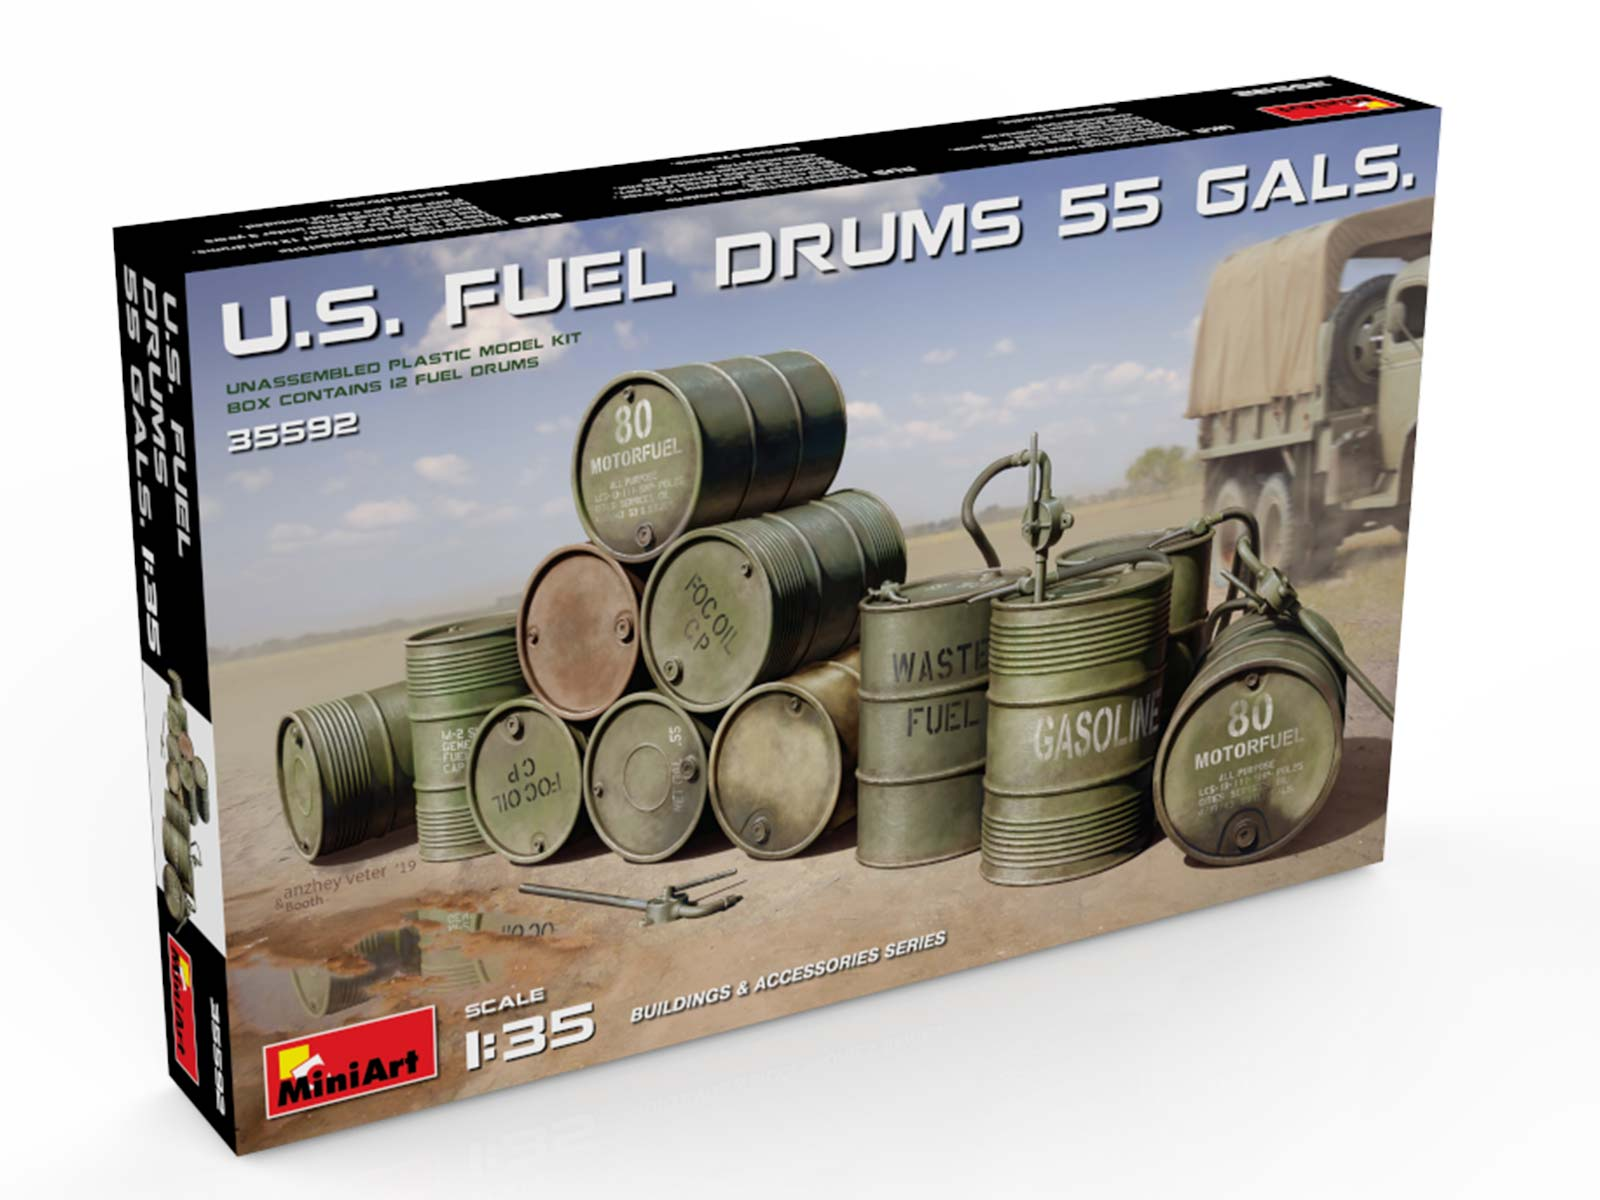 New Photos of Kit: 35592 U.S. FUEL DRUMS 55 GALS.